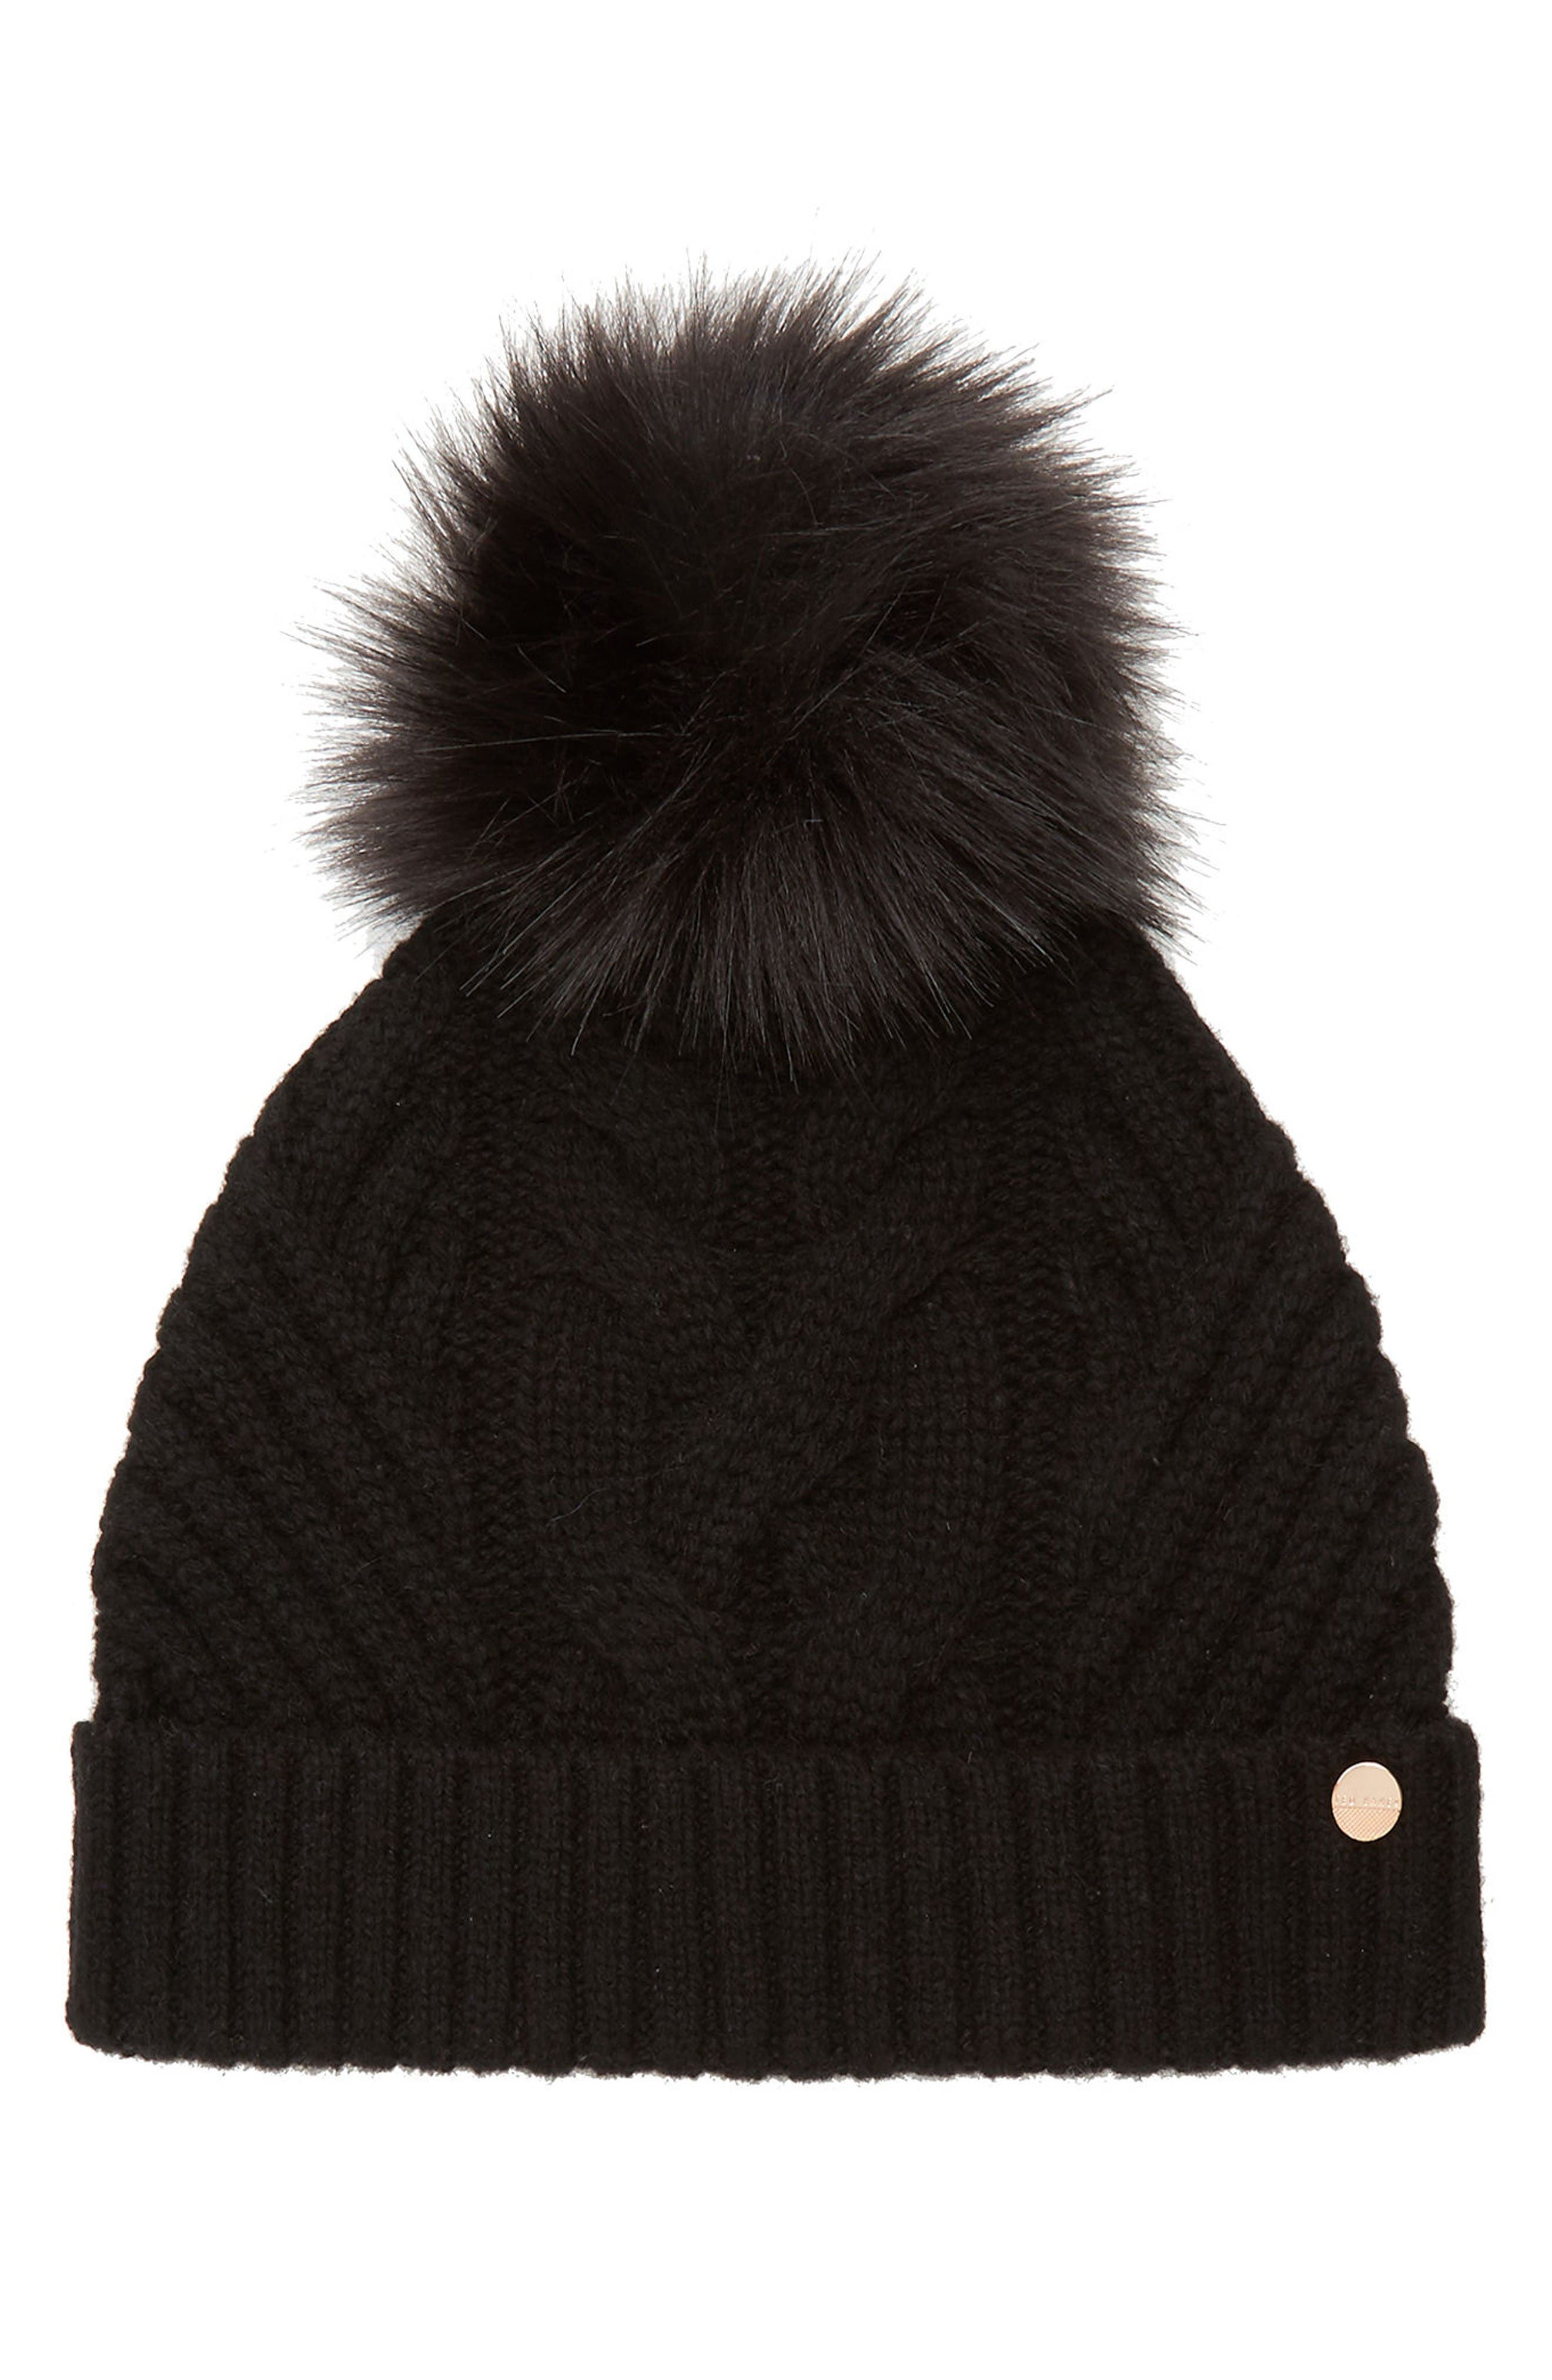 Main Image - Ted Baker London Cable Knit Beanie with Faux Fur Pom